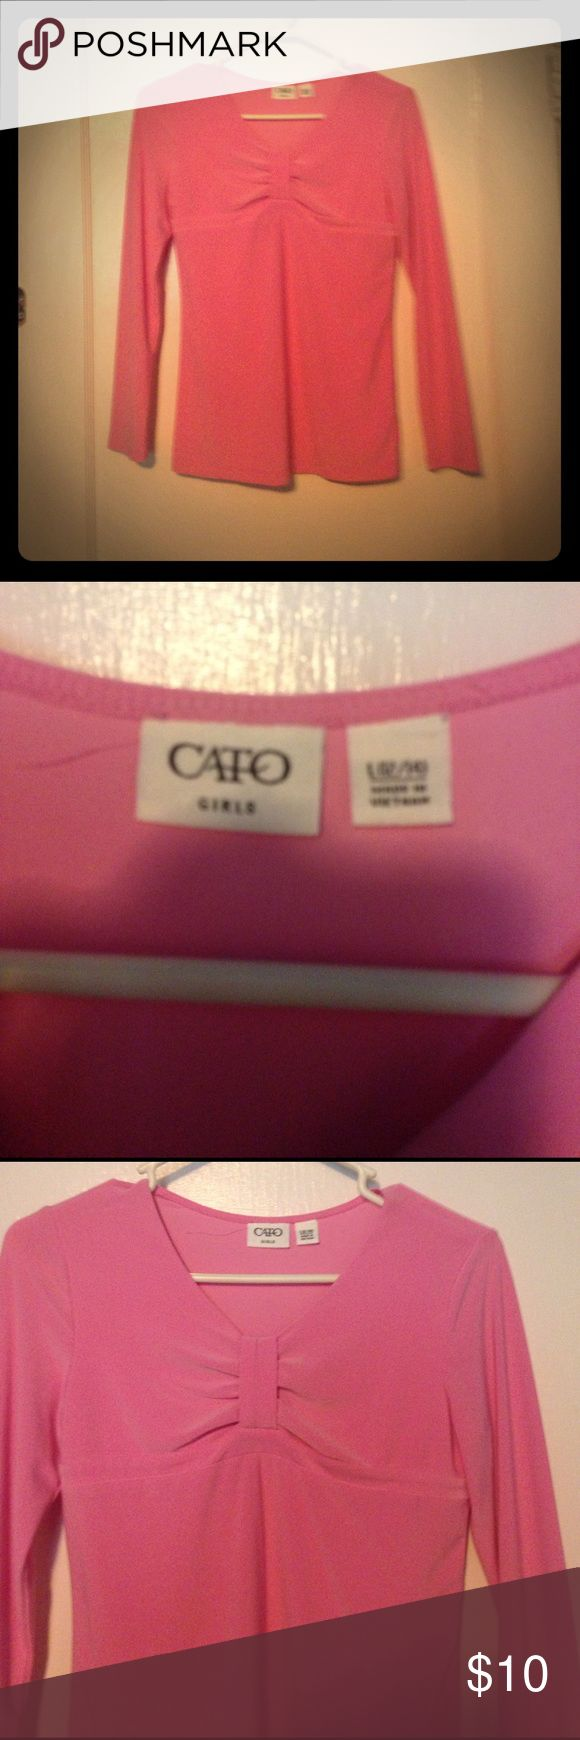 Dress shirt Pink dress shirt in little girl size only been worn once Shirts & Tops Blouses